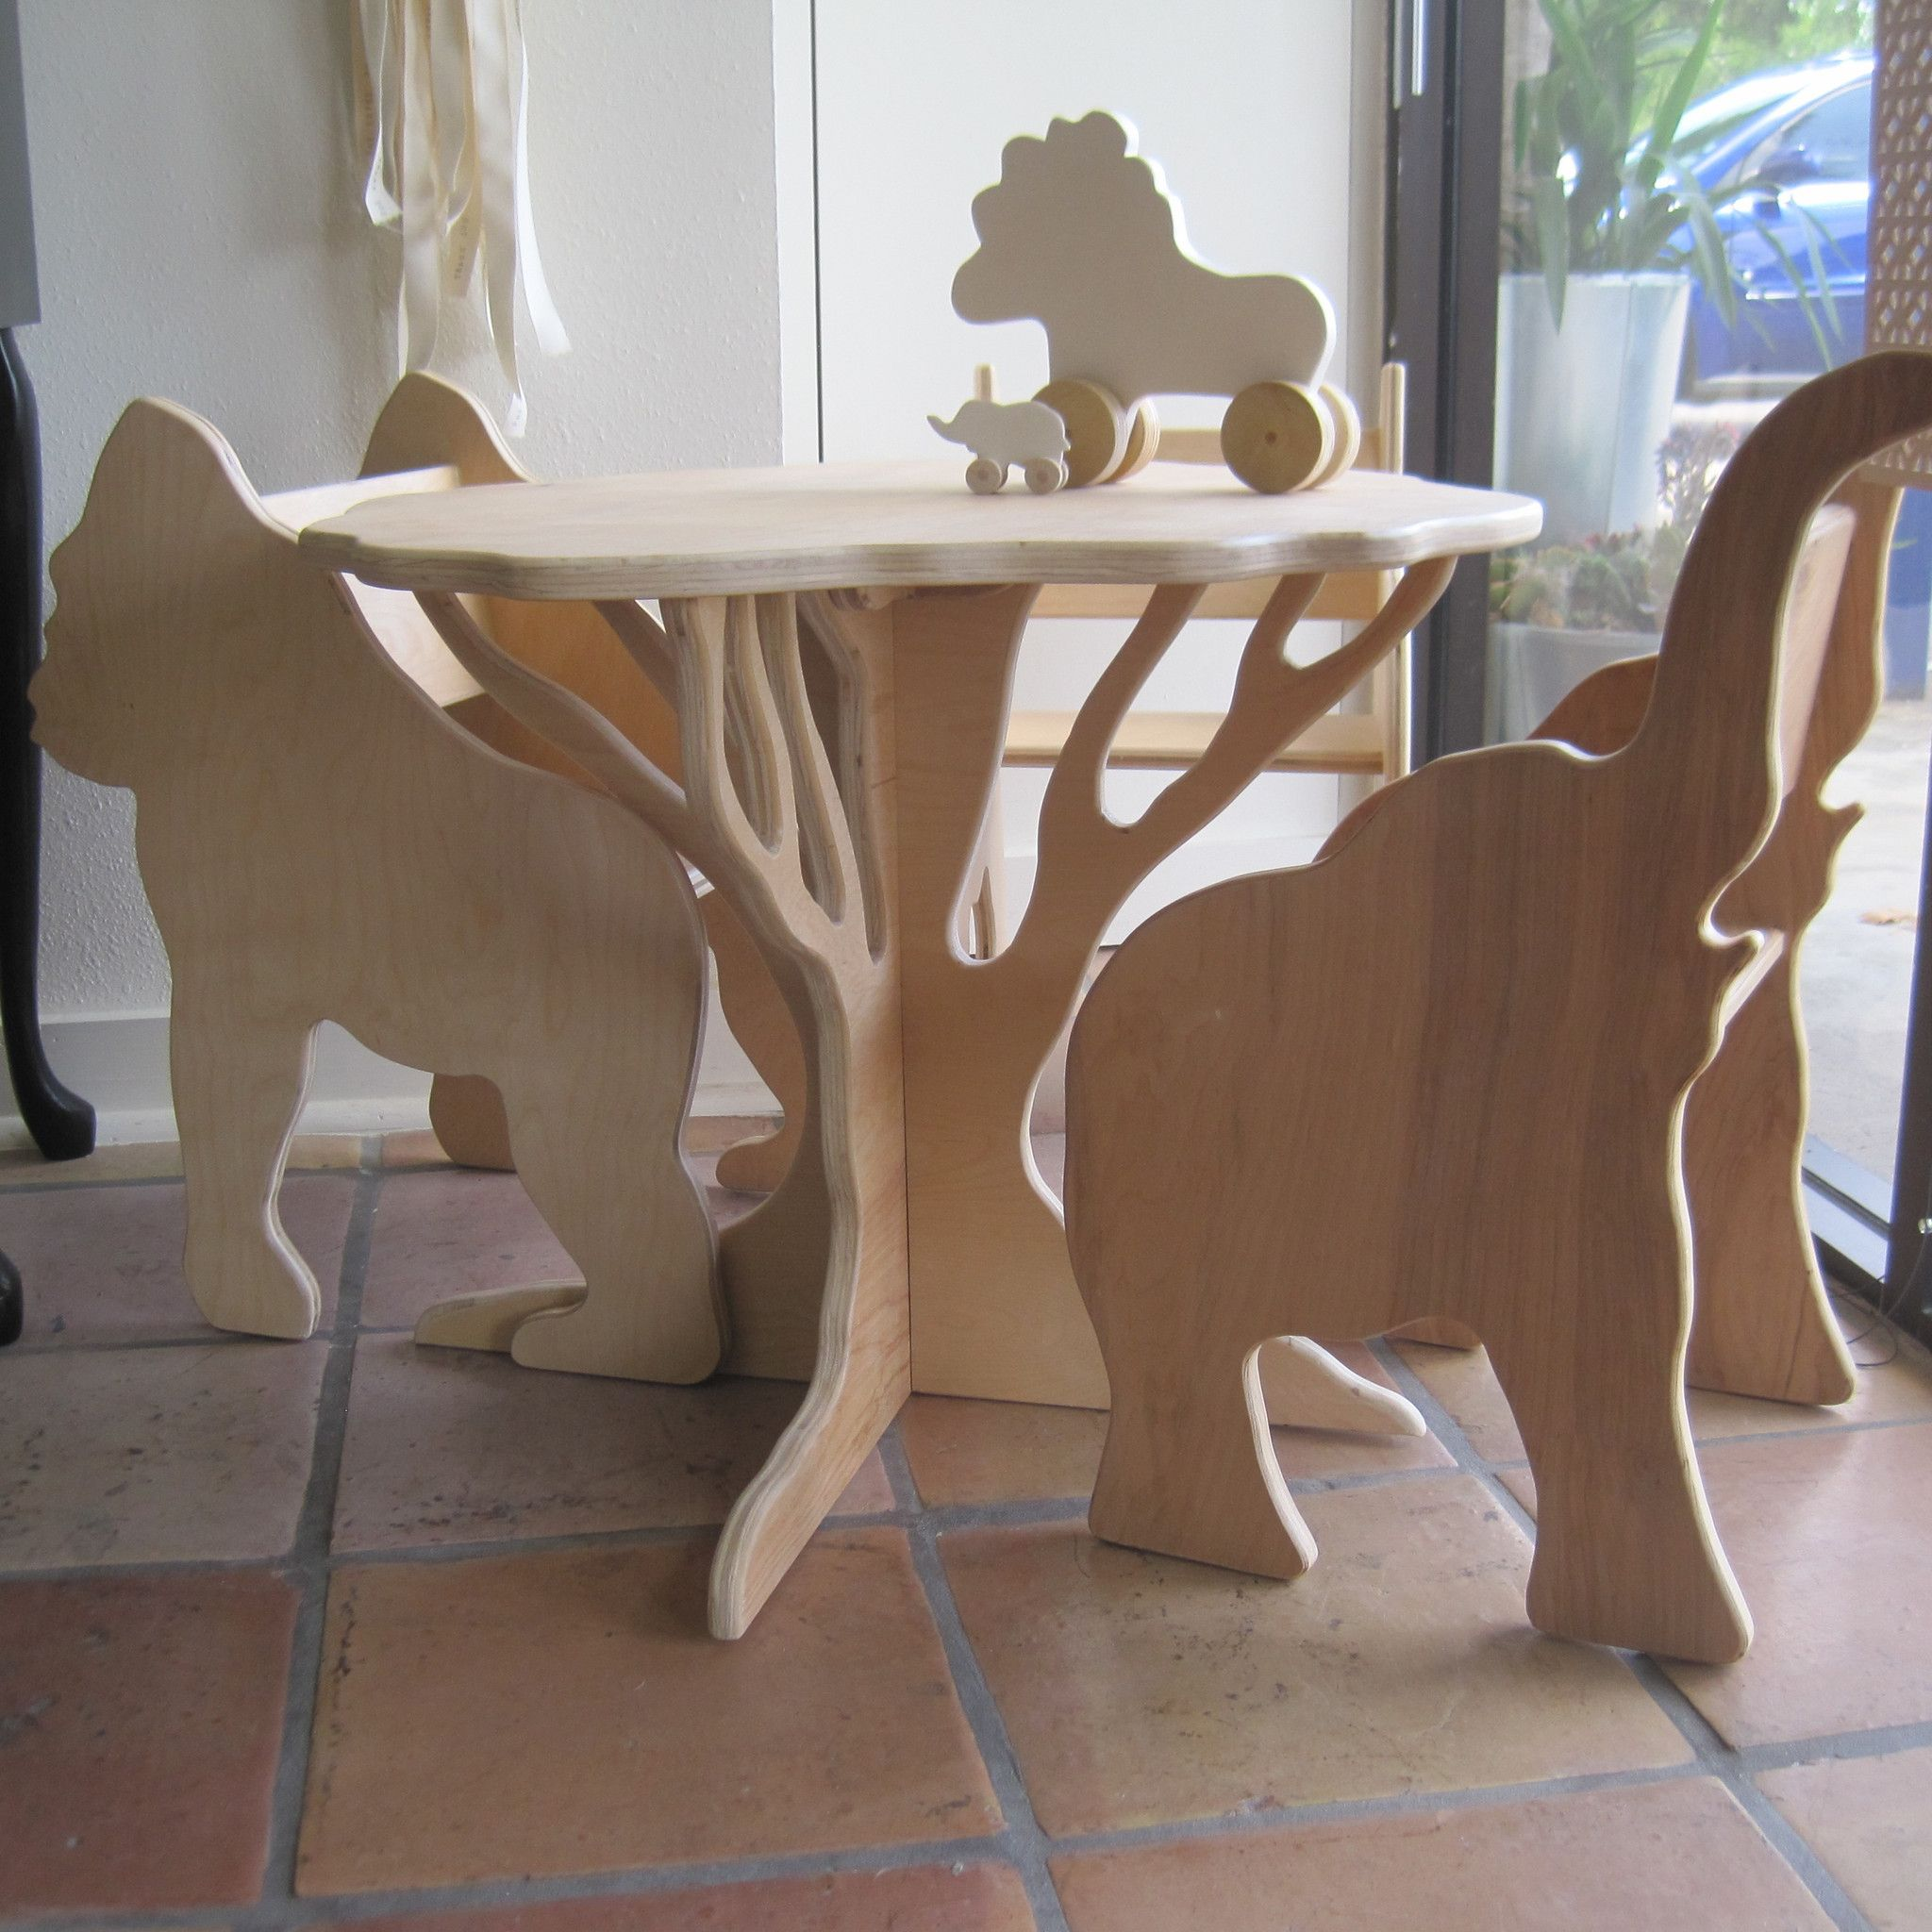 Kids Playroom Table And Chairs table and four animal chairs- sale pricing furniture set | simple